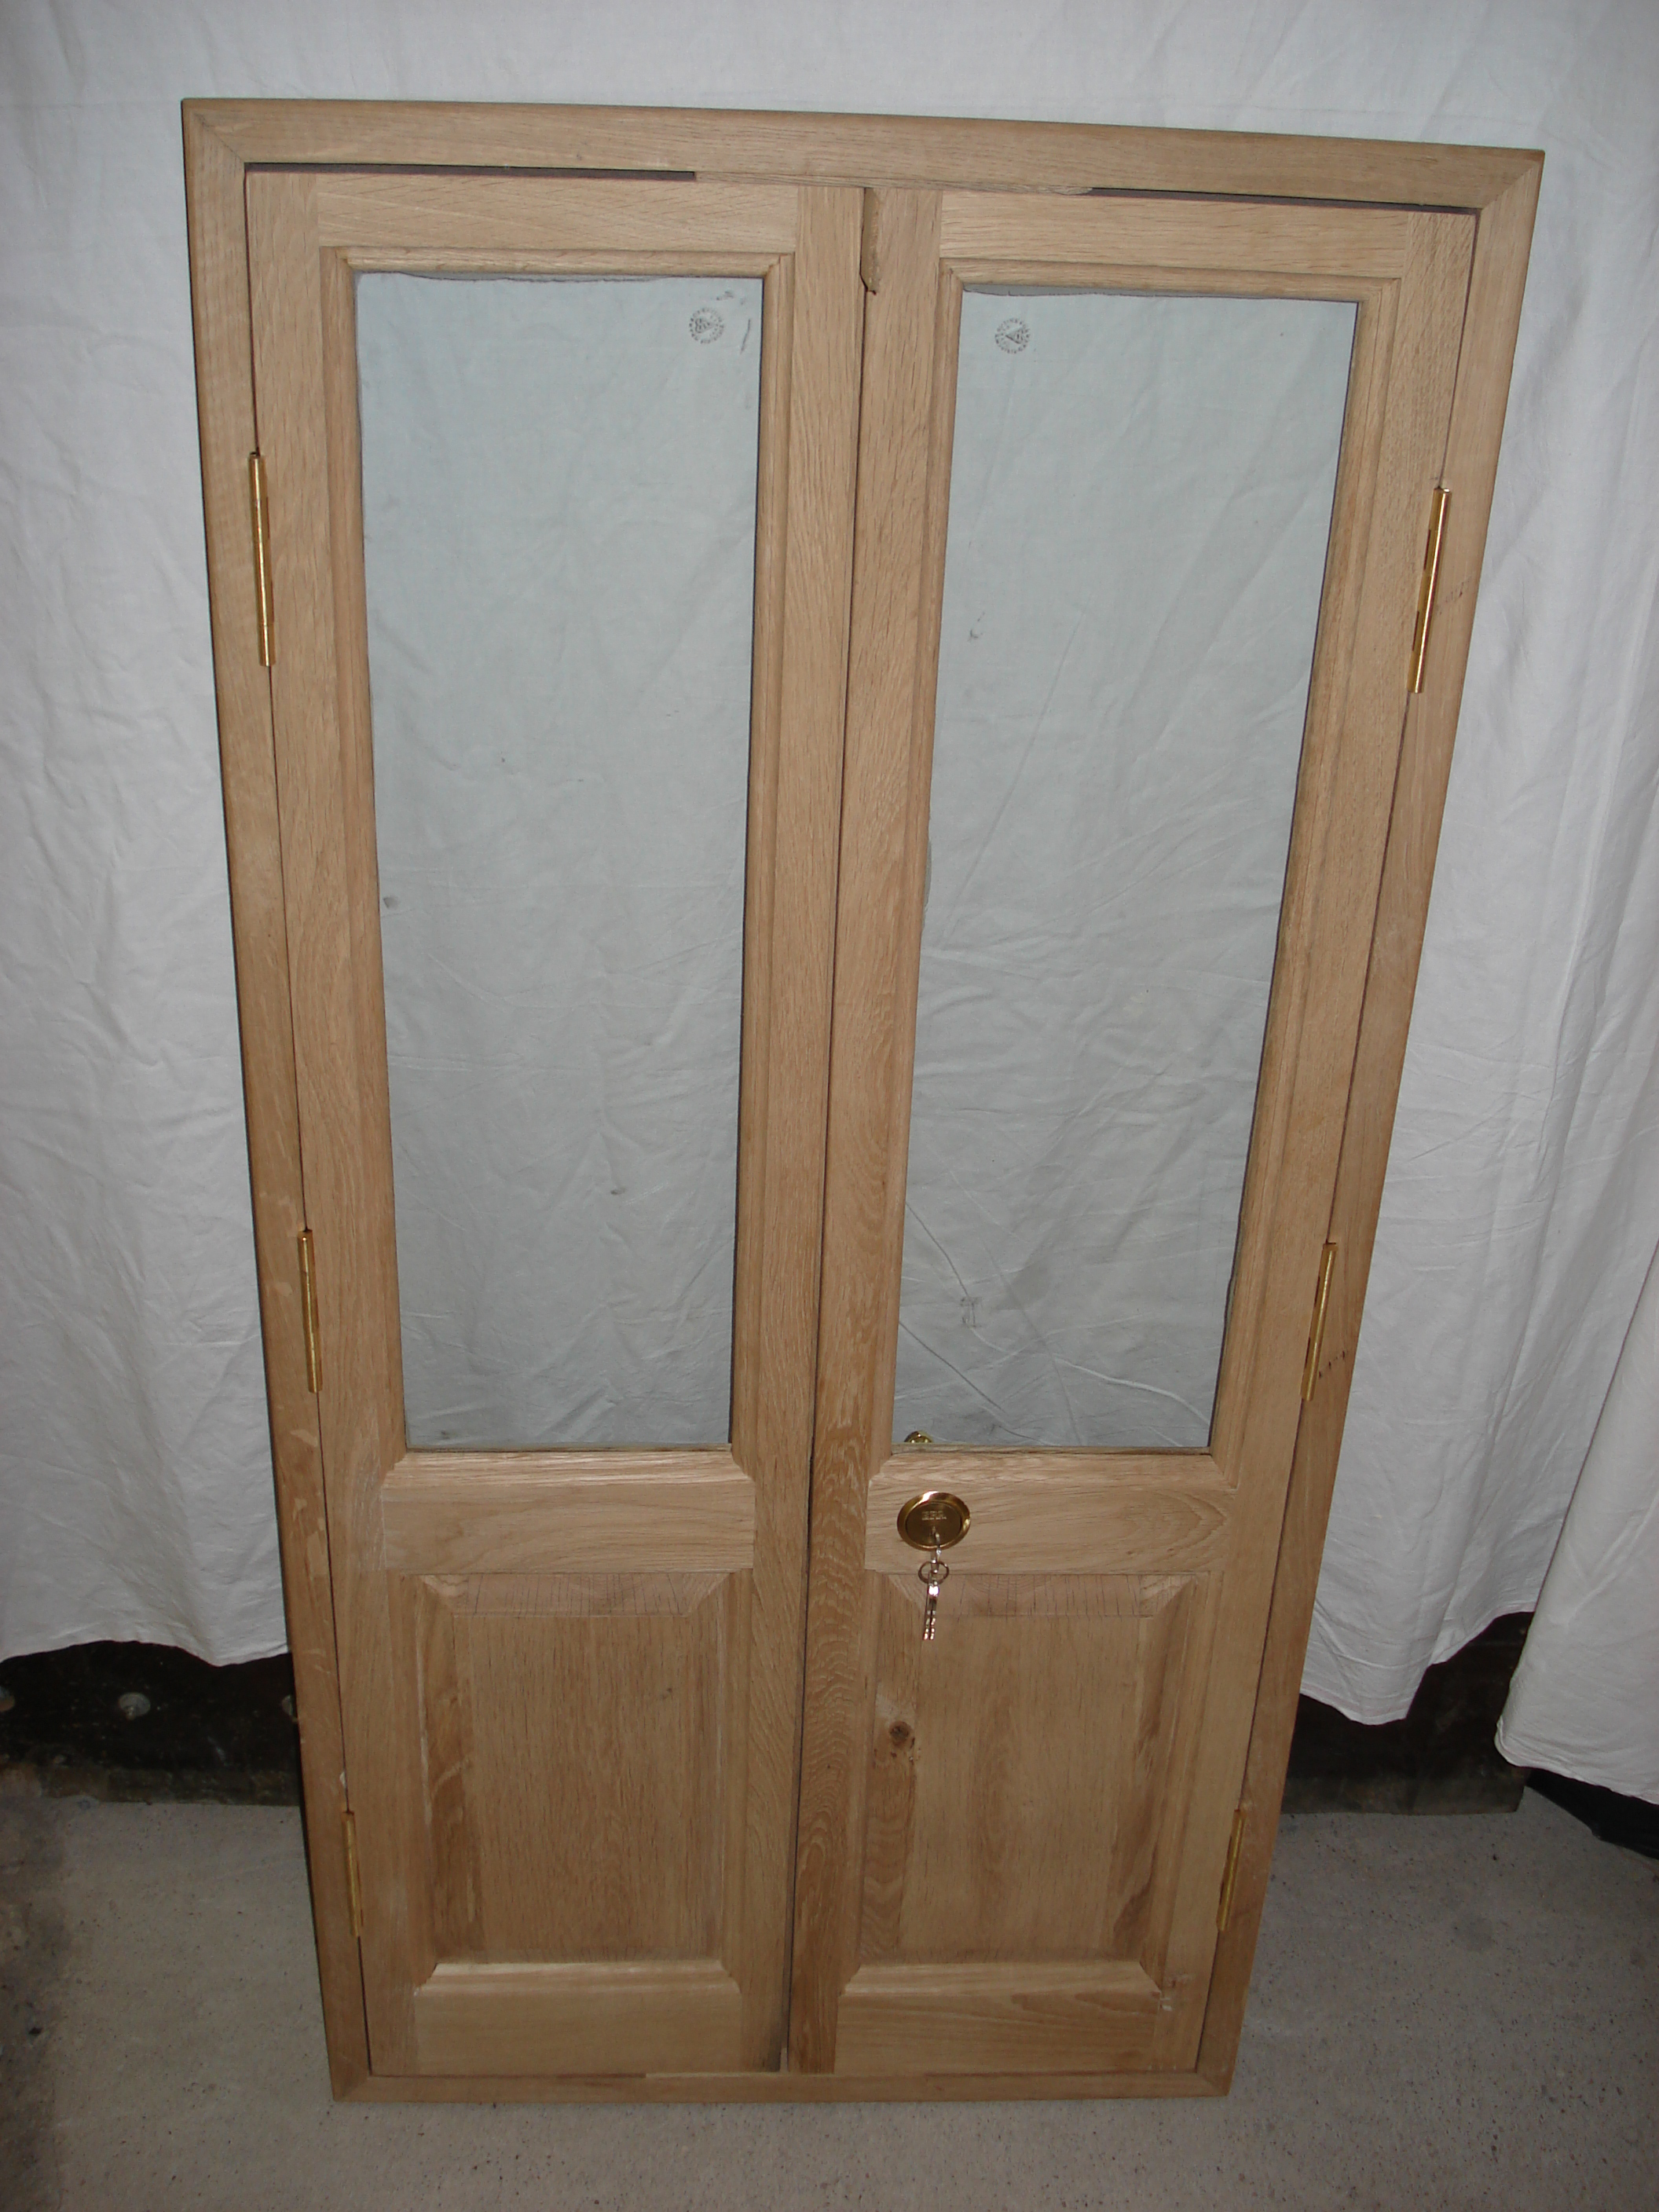 EXTERIOR DOOR - FRONT - UNTREATED OAK.JPG